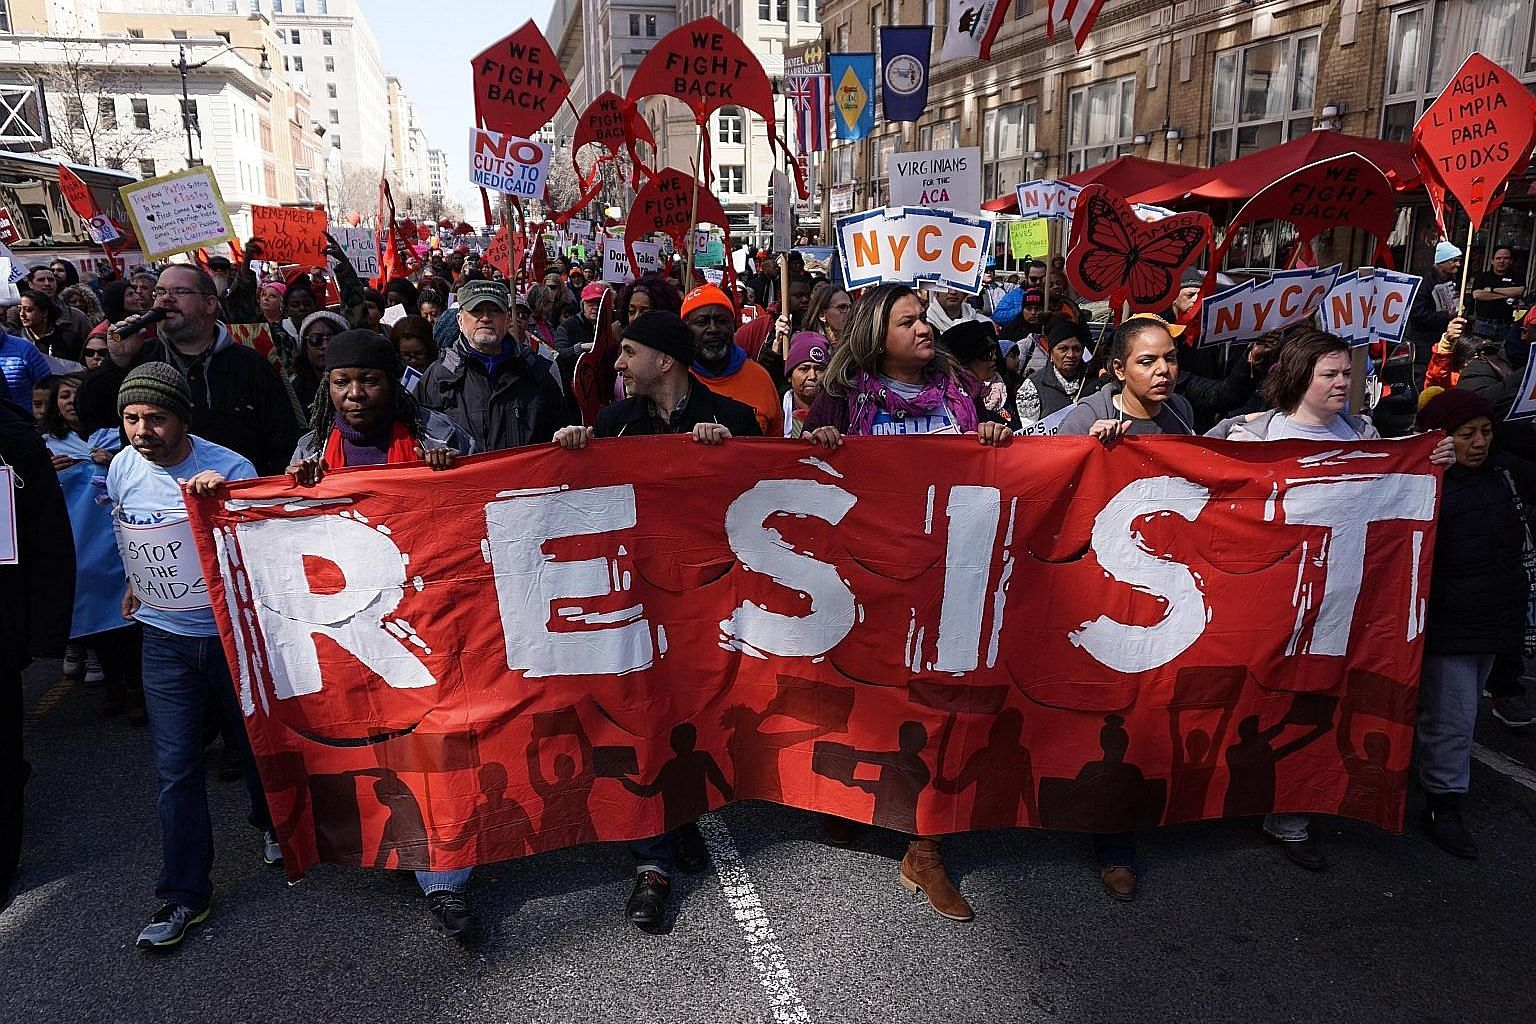 Protesters at a rally against Mr Trump's healthcare reform Bill in Washington last Thursday. With the Bill's withdrawal, markets are more concerned with whether the administration can overhaul the tax code and implement tax cuts and infrastructure sp